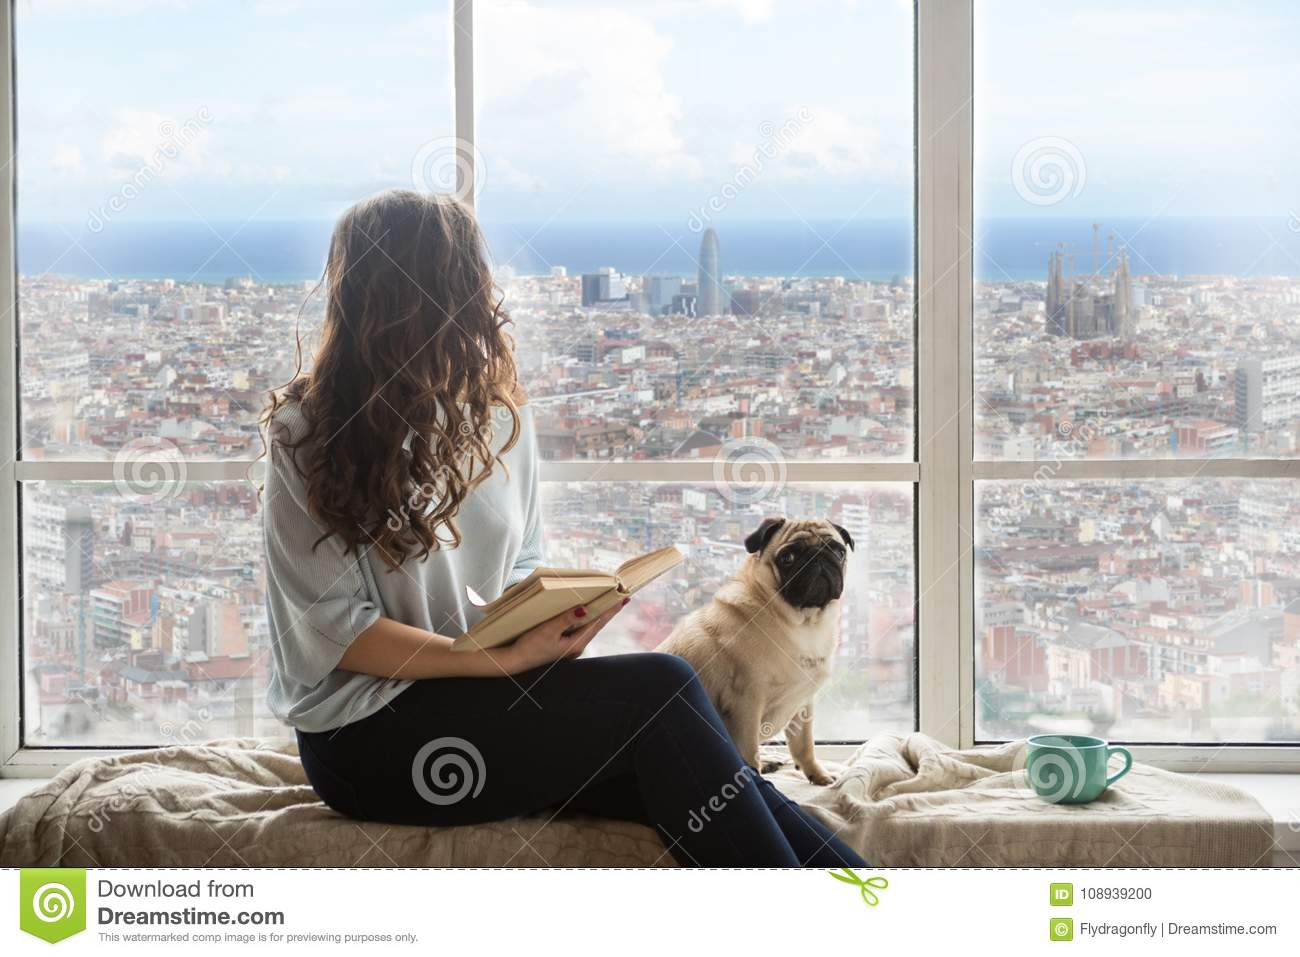 Beautiful long haired woman with her dog enjoying Barcelona Spain view outside the window